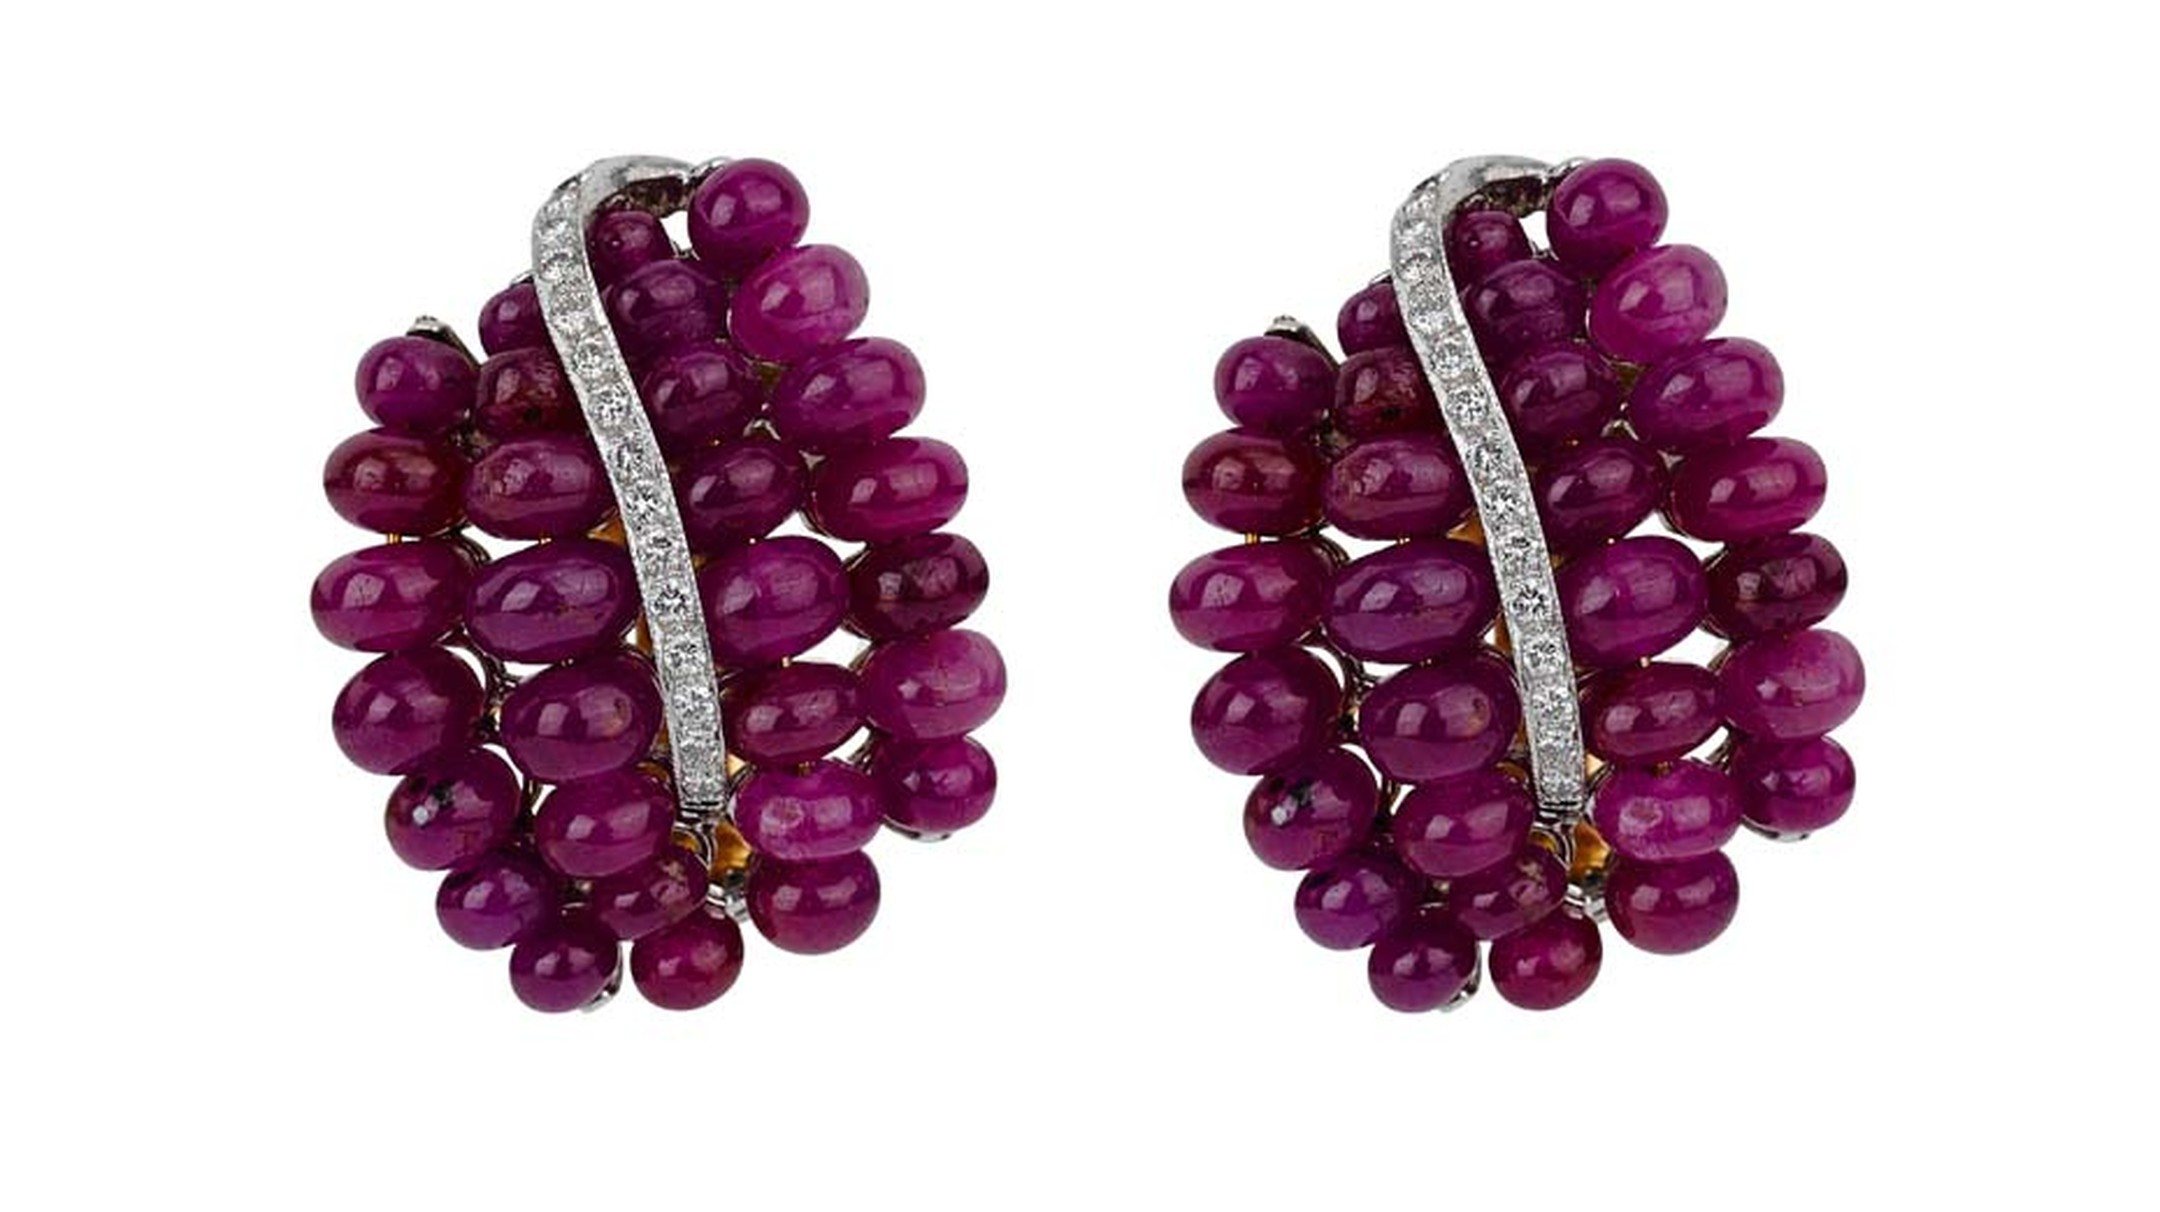 Latest Revival's deep purple-pink ruby estate earrings with diamonds.